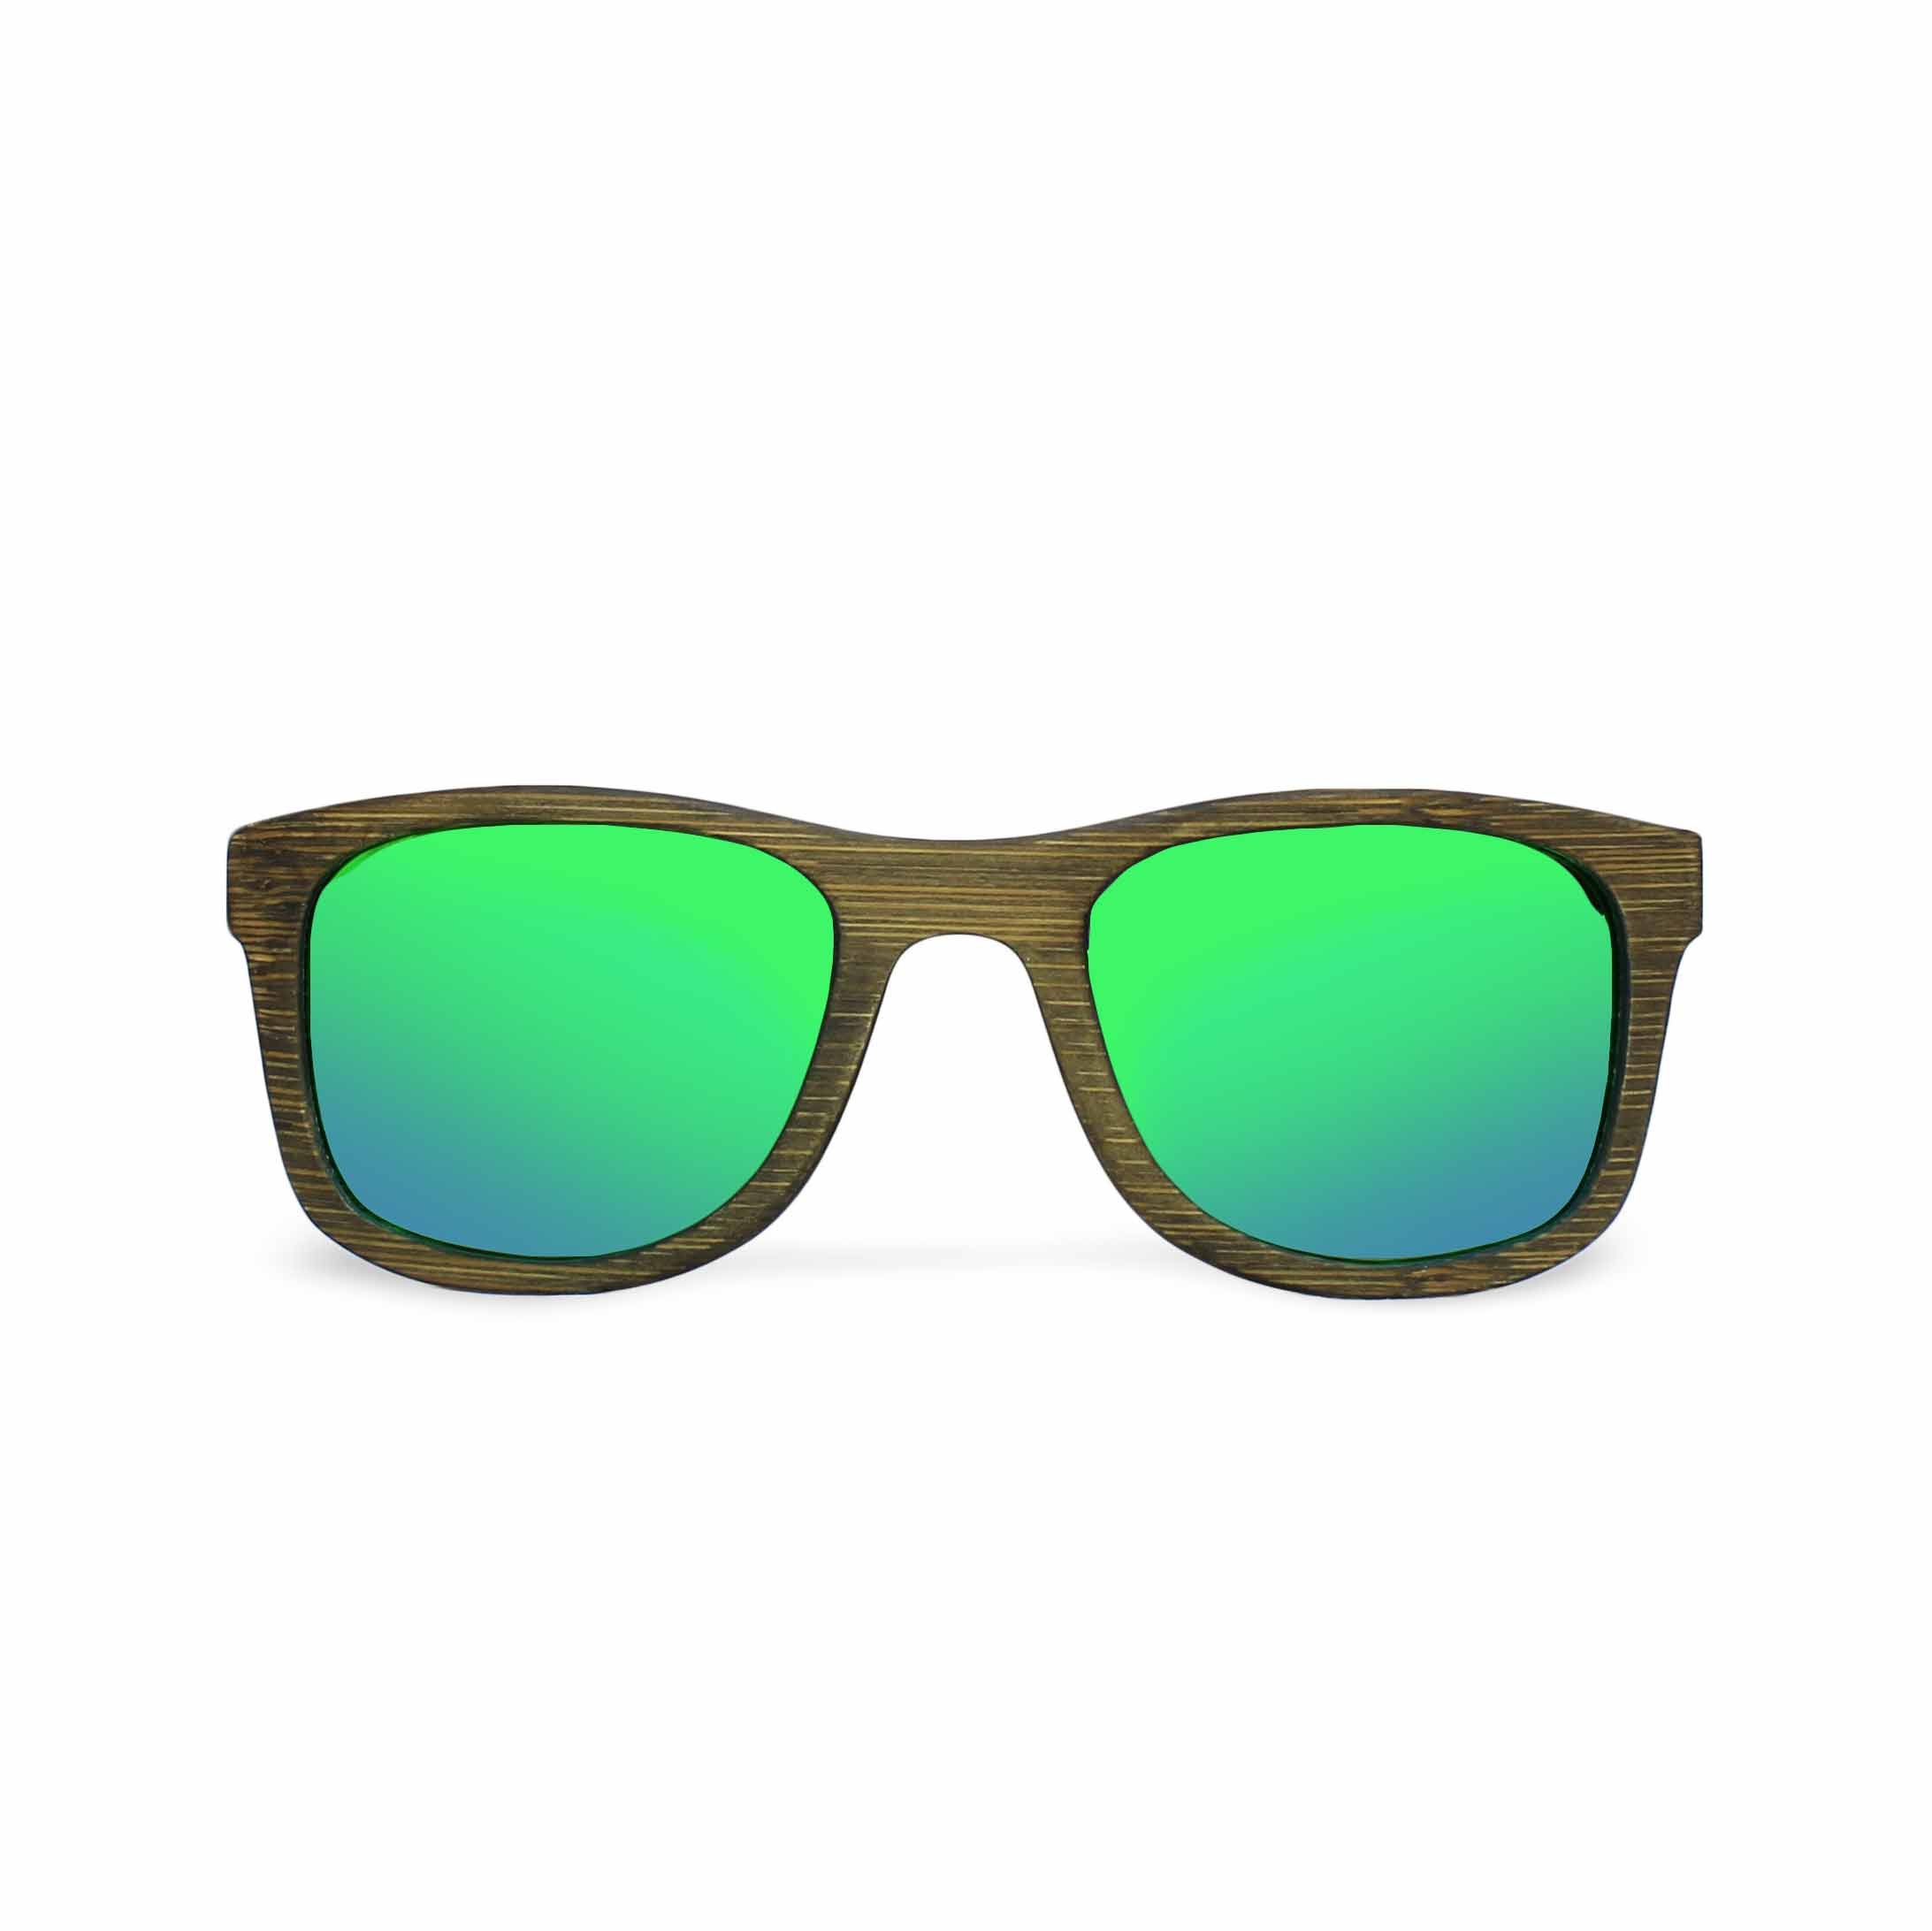 2867d87c14bfba Wooden Glasses - Murielo Green Mirror